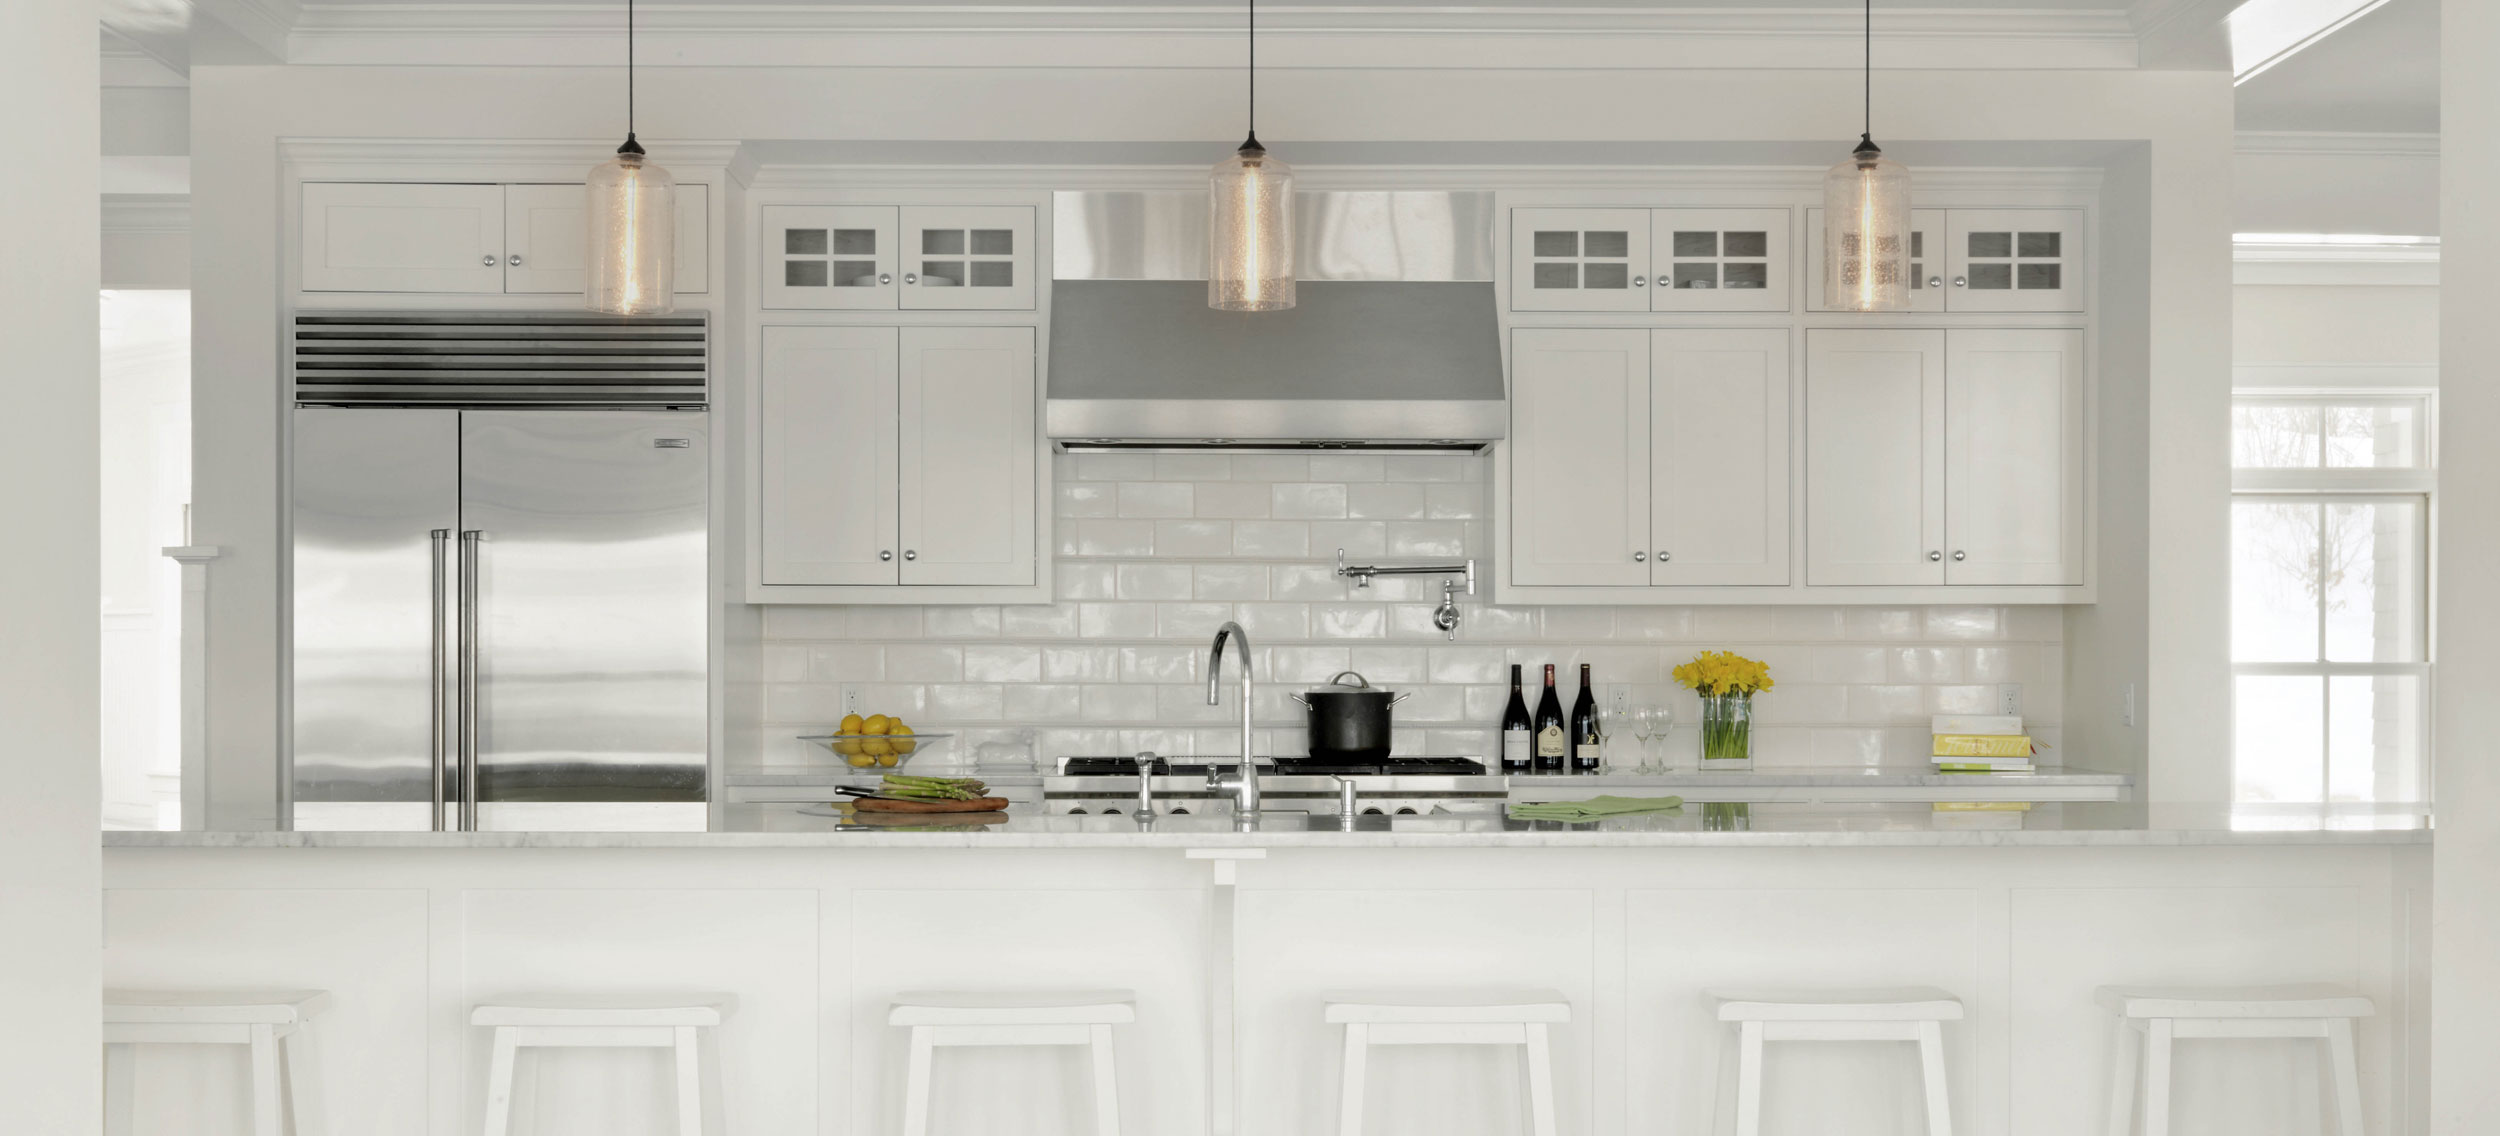 white-kitchen-1.jpg